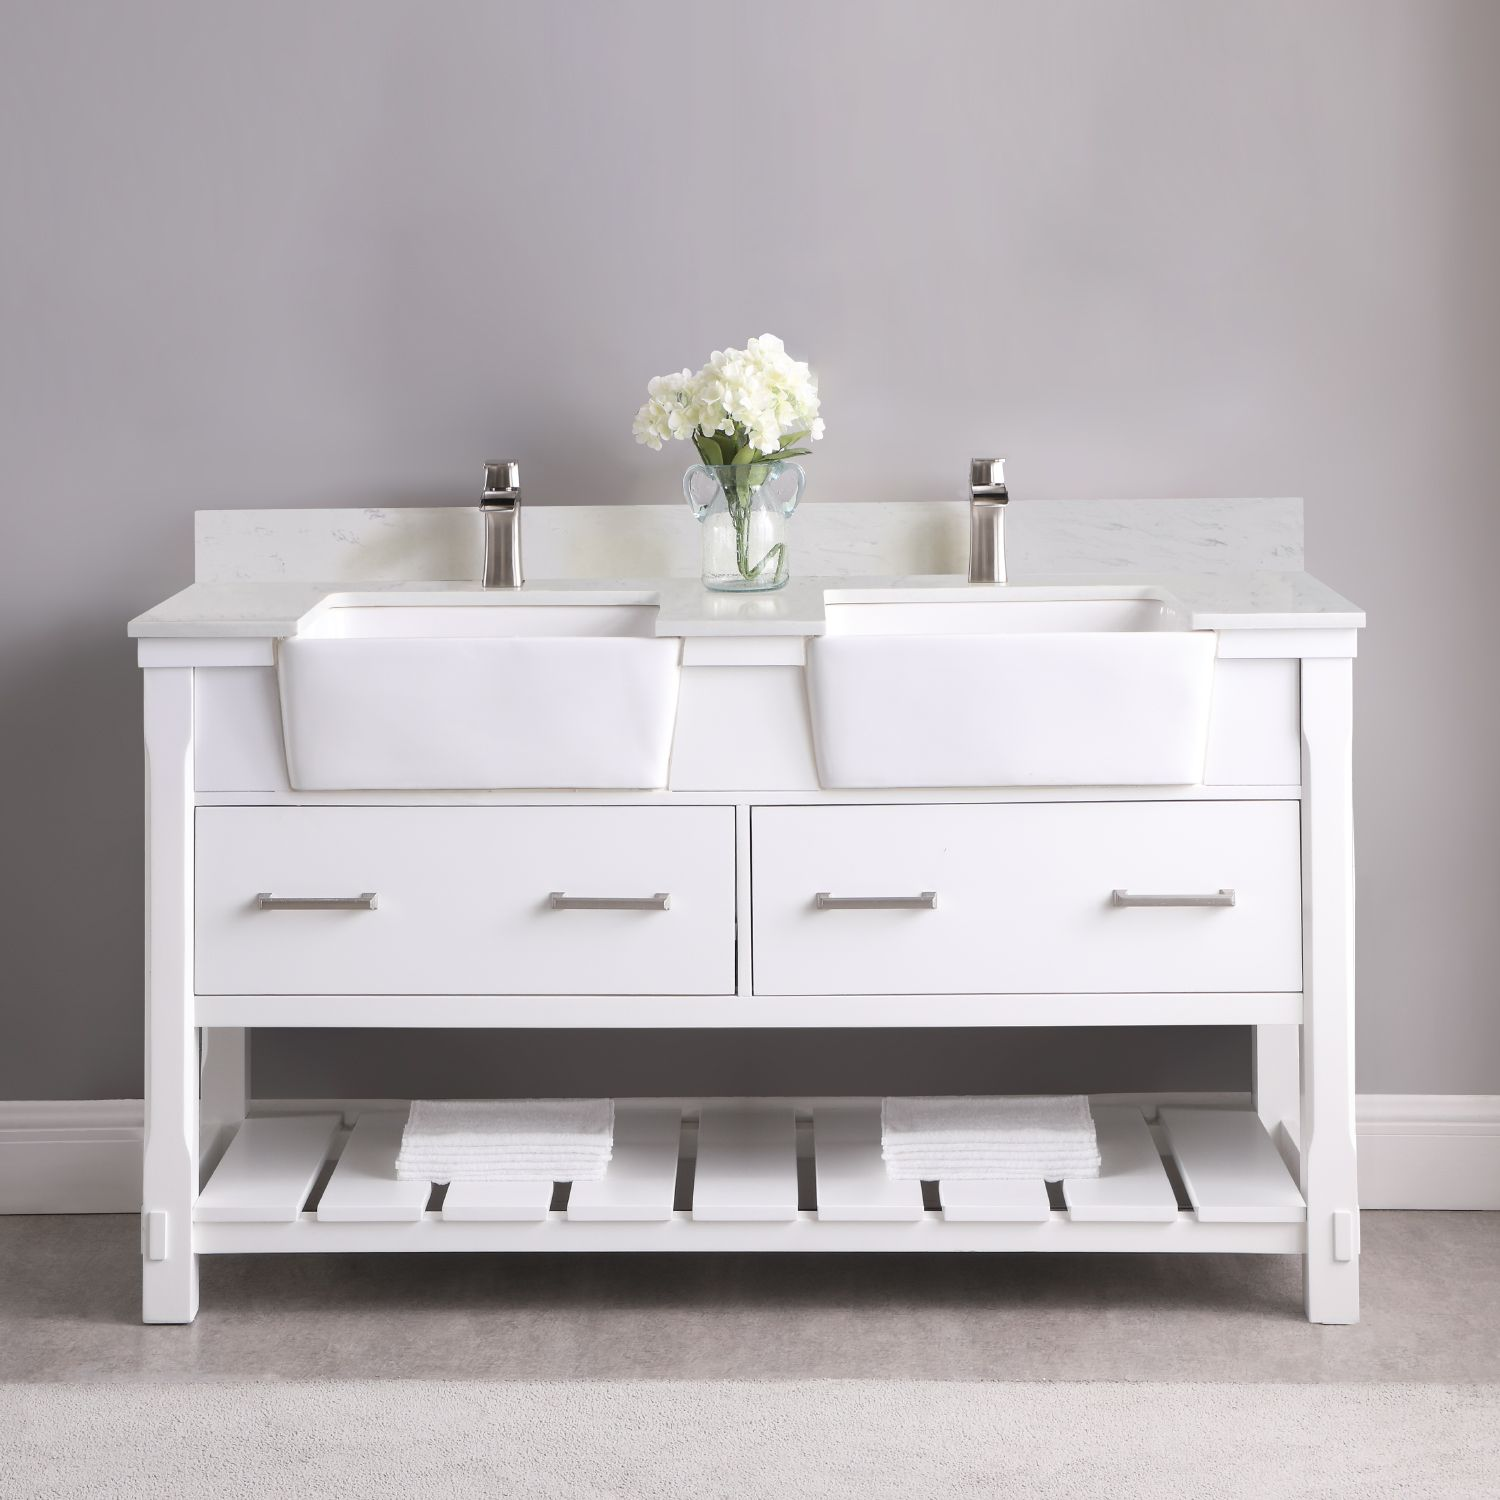 "Issac Edwards Collection 60"" Double Bathroom Vanity Set in White and Composite Carrara White Stone Top with White Farmhouse Basin without Mirror"